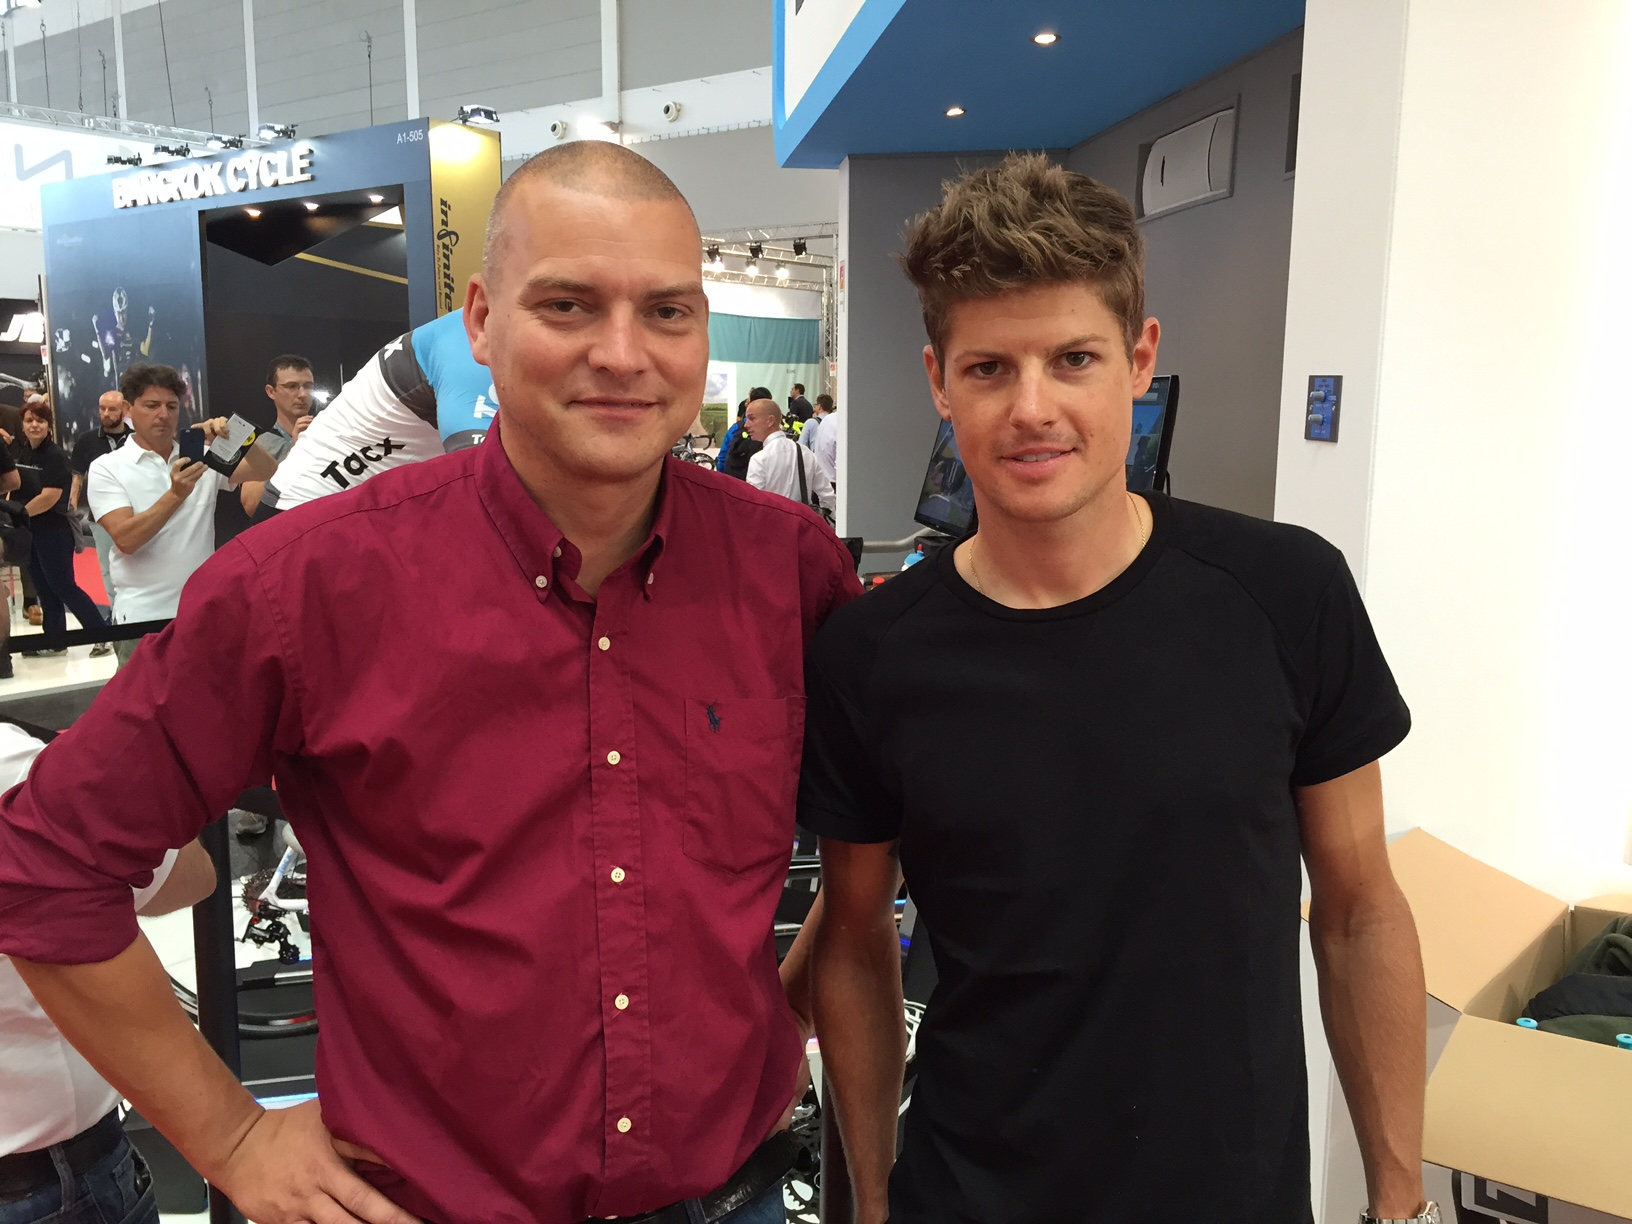 Alex Ingildsen, CCO LTP Group and Jacob Fuglsang, Danish 2016 Olympic road race silver medalist discuss bike apparel trends at the Euro bike fair